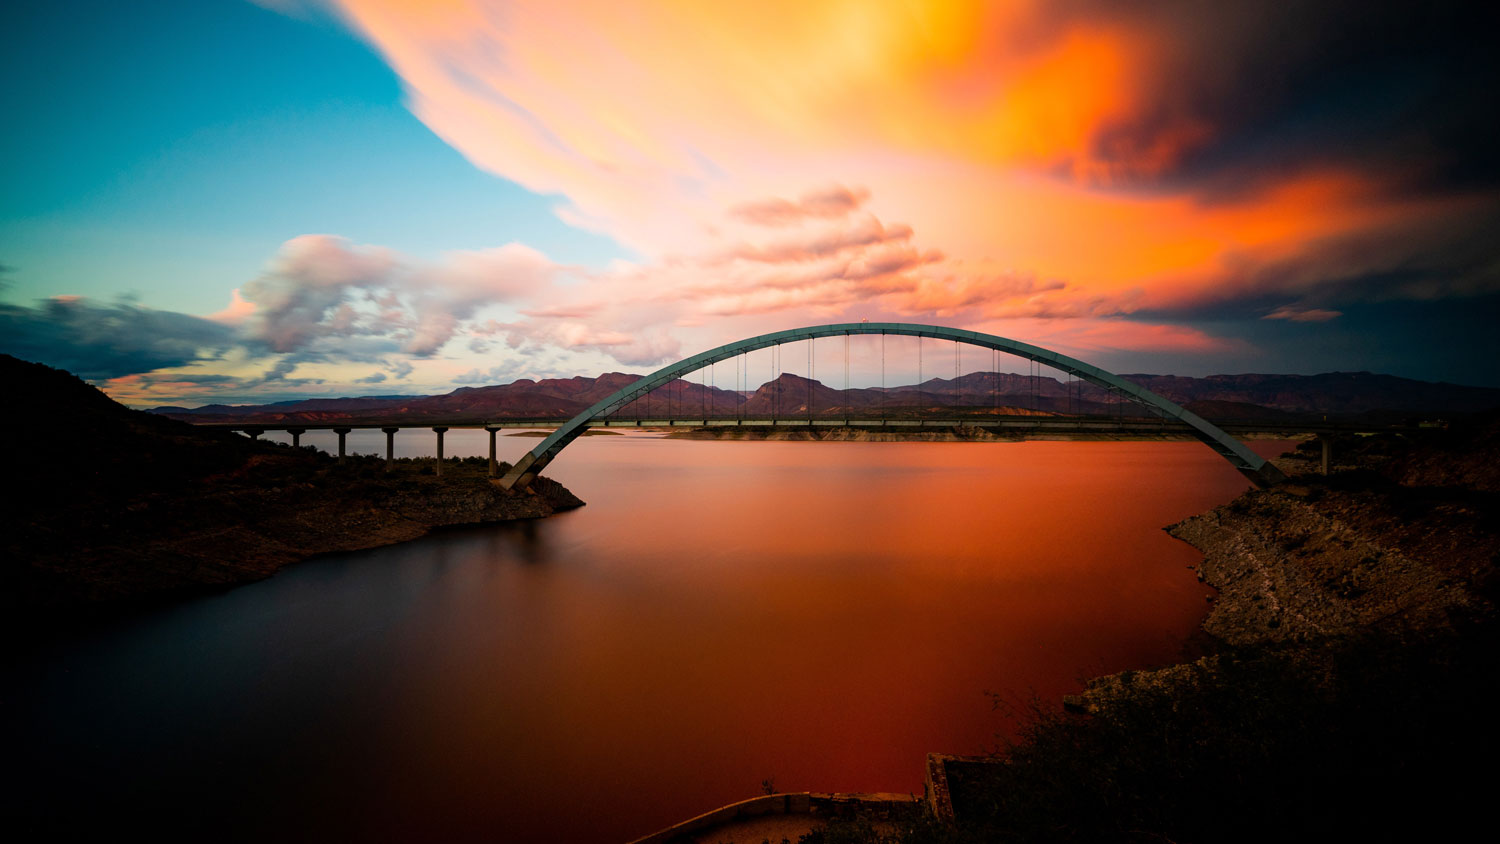 Private jet to the sunset in Phoenix with a bridge